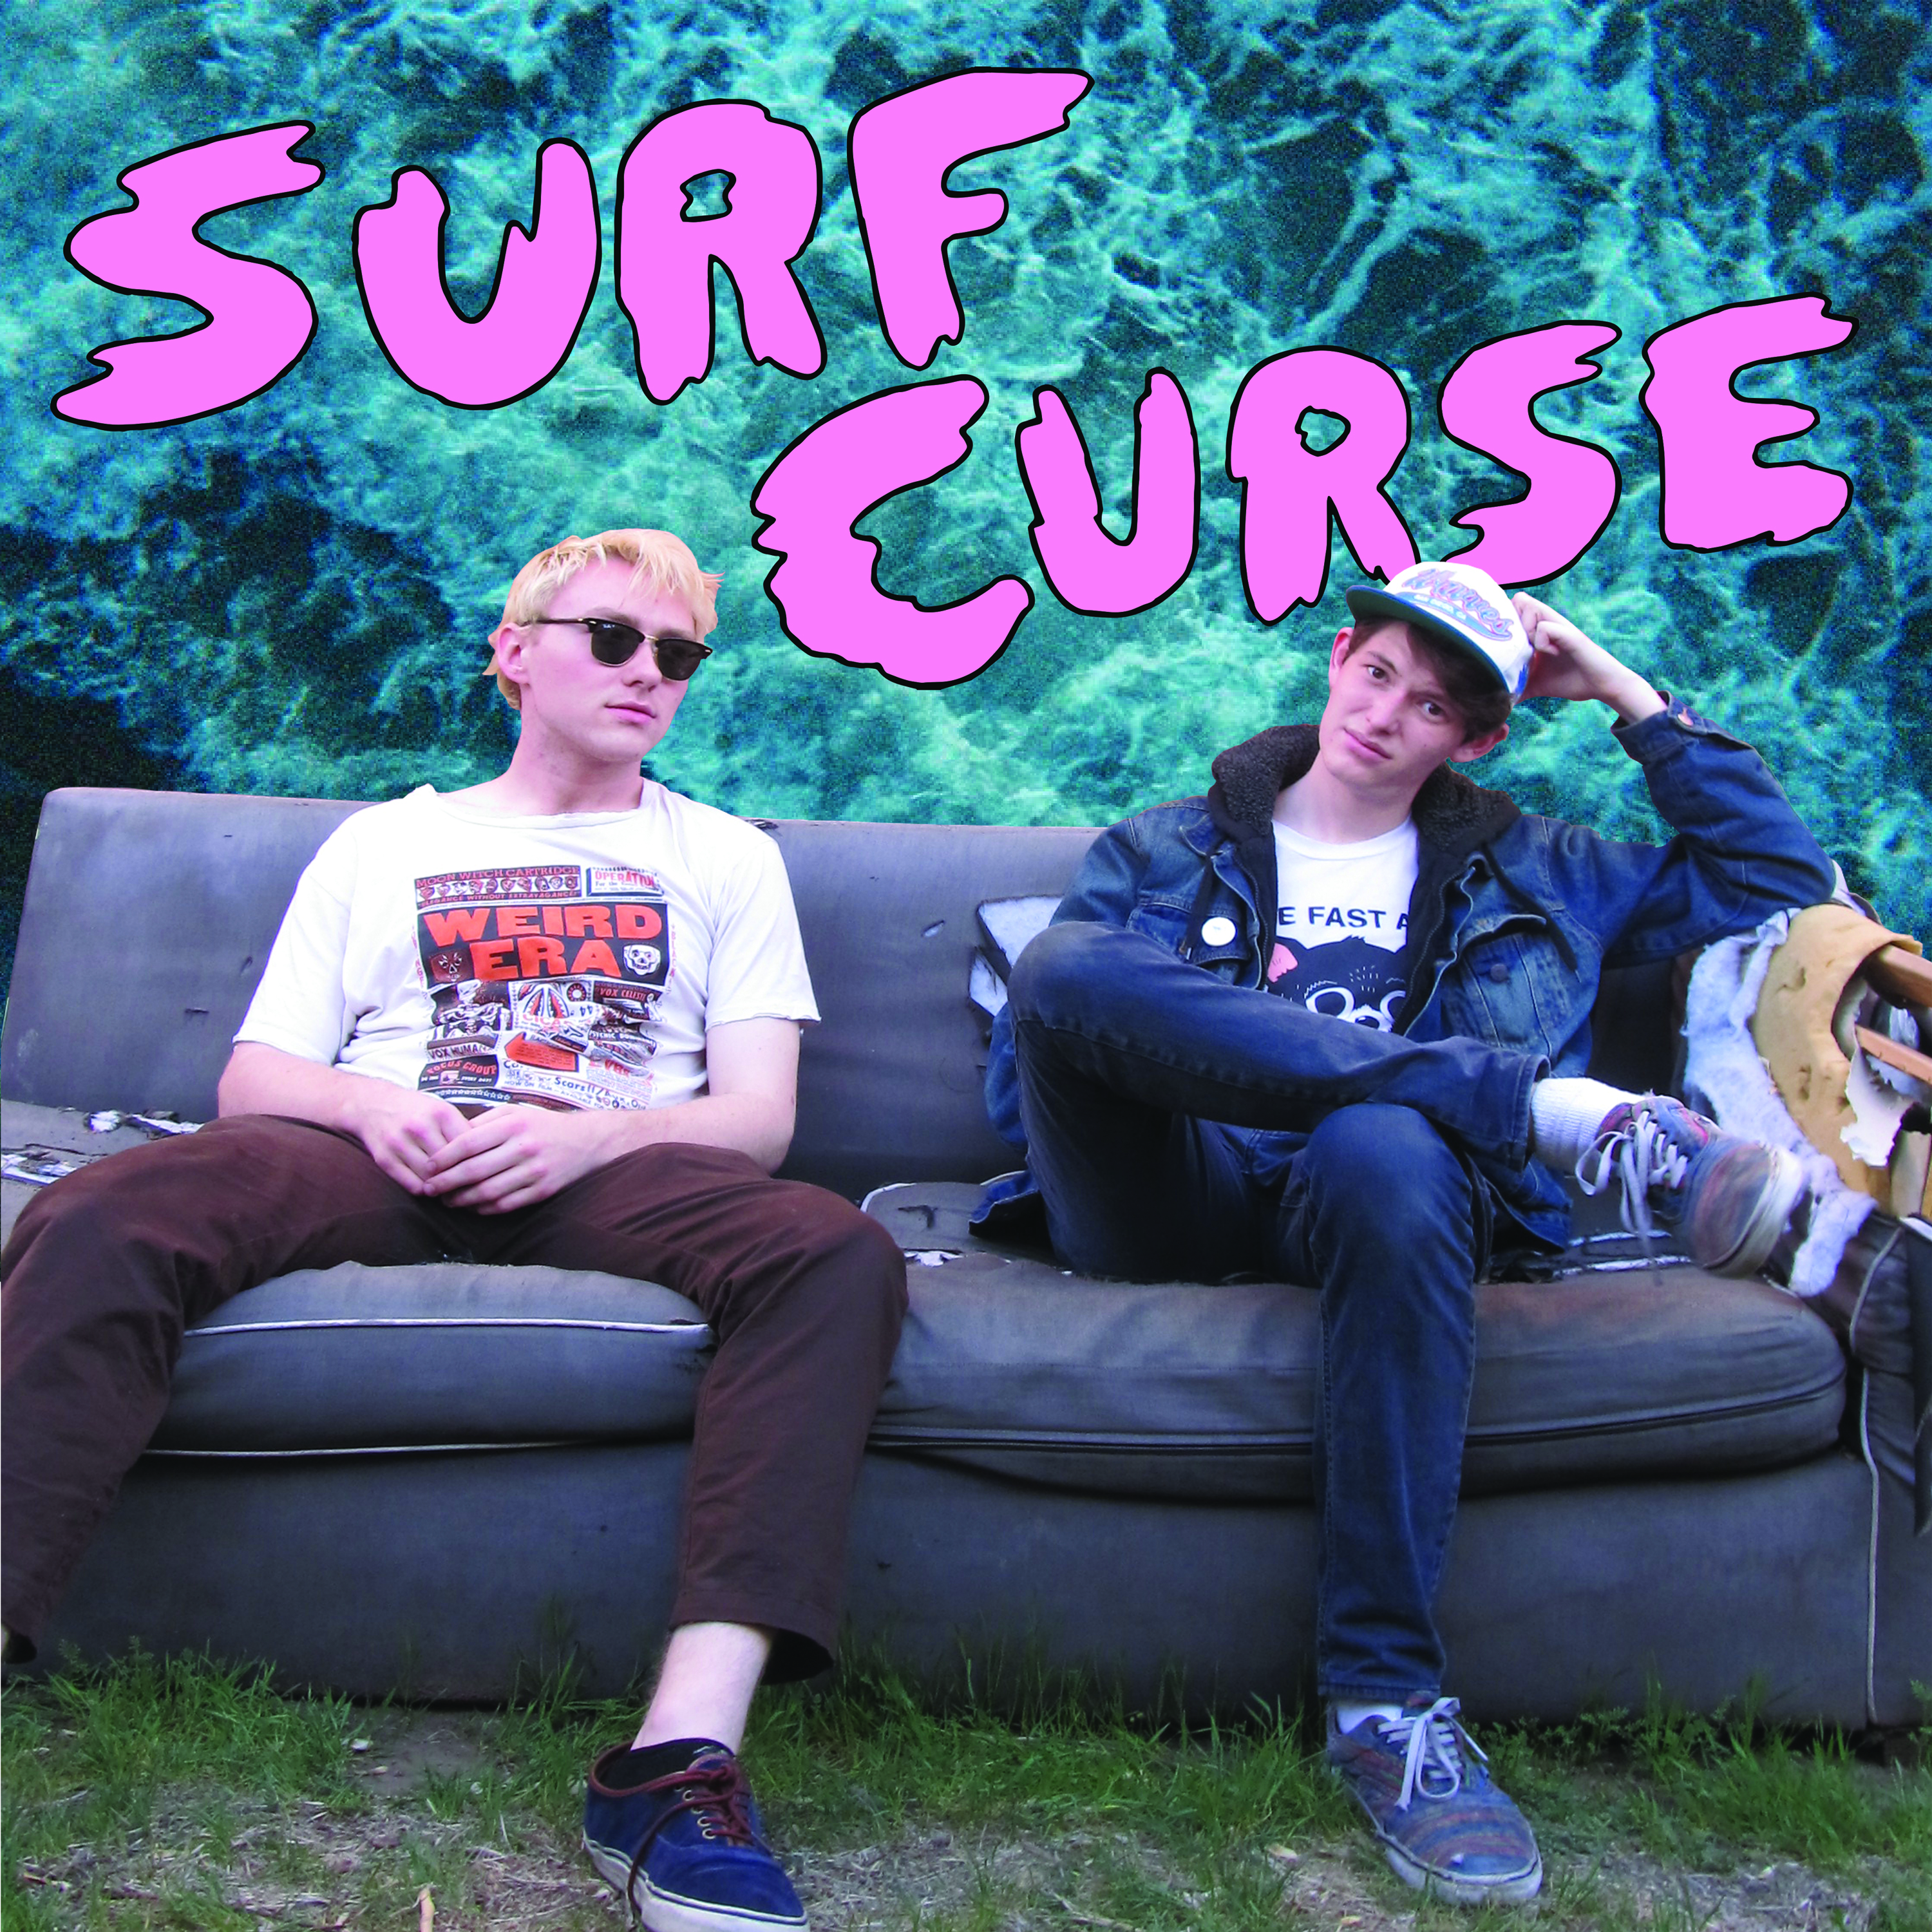 Surf Curse -  Buds (Vinyl Reissue) -Sold Out